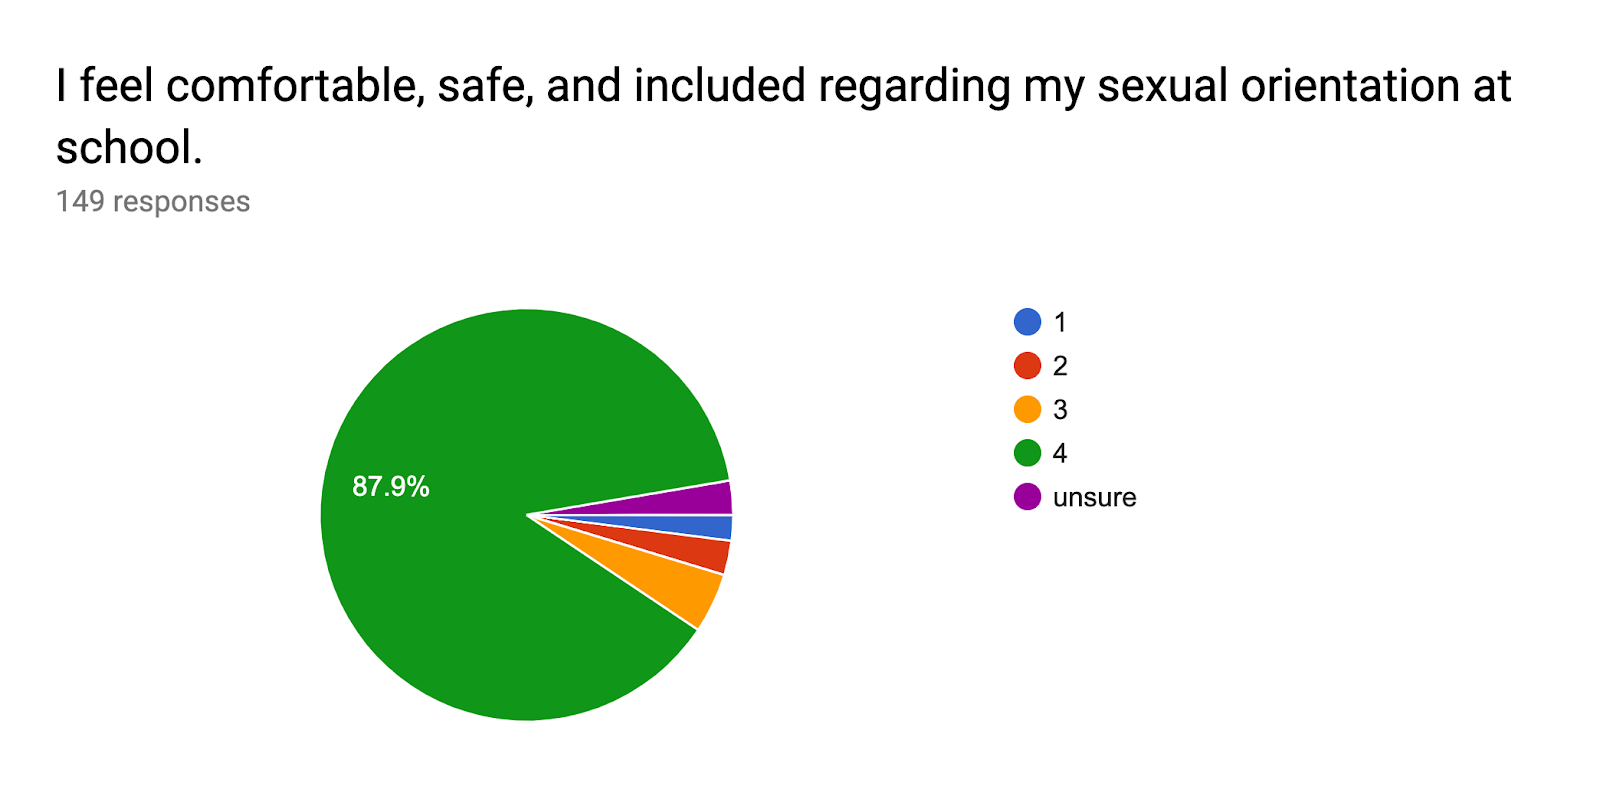 Forms response chart. Question title: I feel comfortable, safe, and included regarding my sexual orientation at school.. Number of responses: 149 responses.